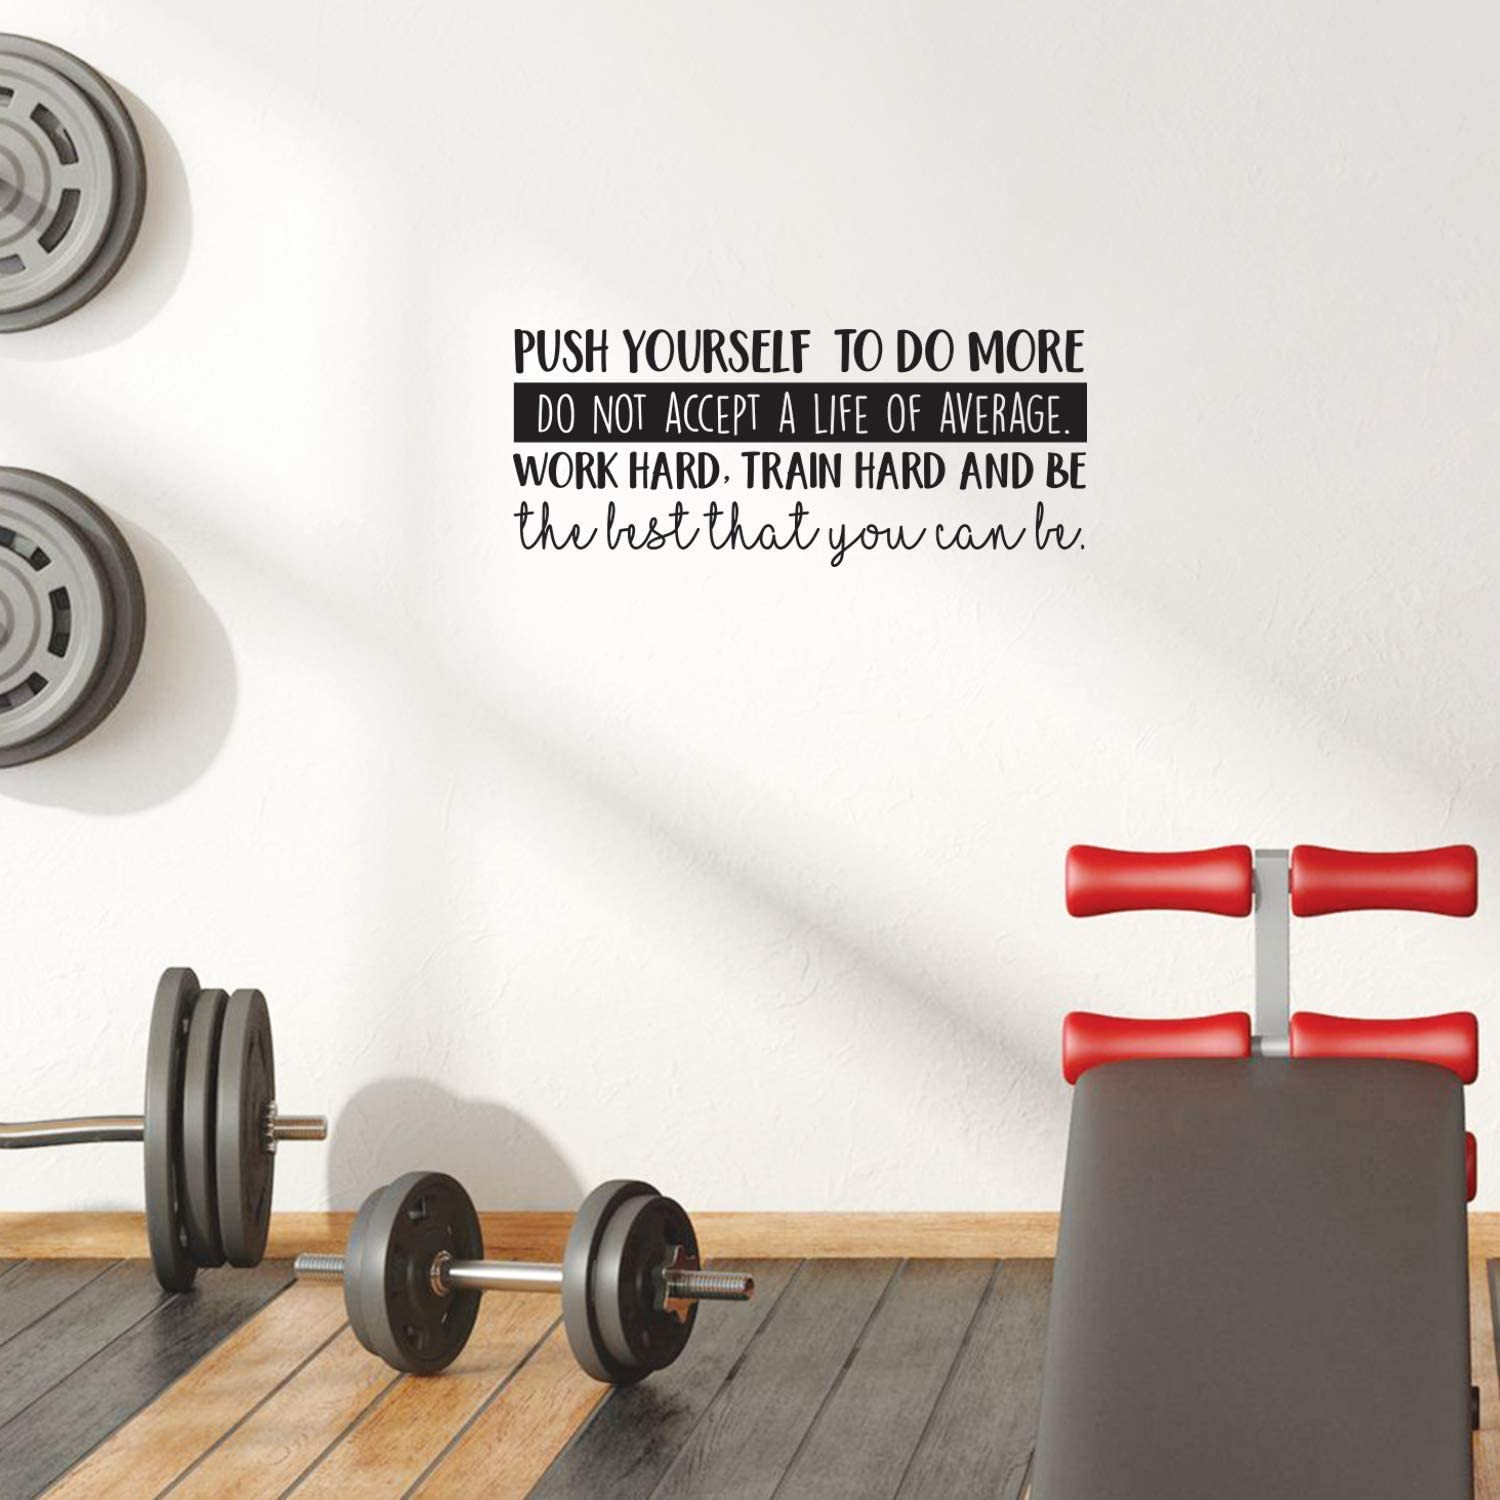 """Vinyl Wall Art Decal - Push Yourself to Do More Do Not Accept A Life of Average - 10.5"""" x 25"""" - Positive Motivational Quote for Gym Fitness Home Workout Bedroom Decoration Sticker (Black)"""